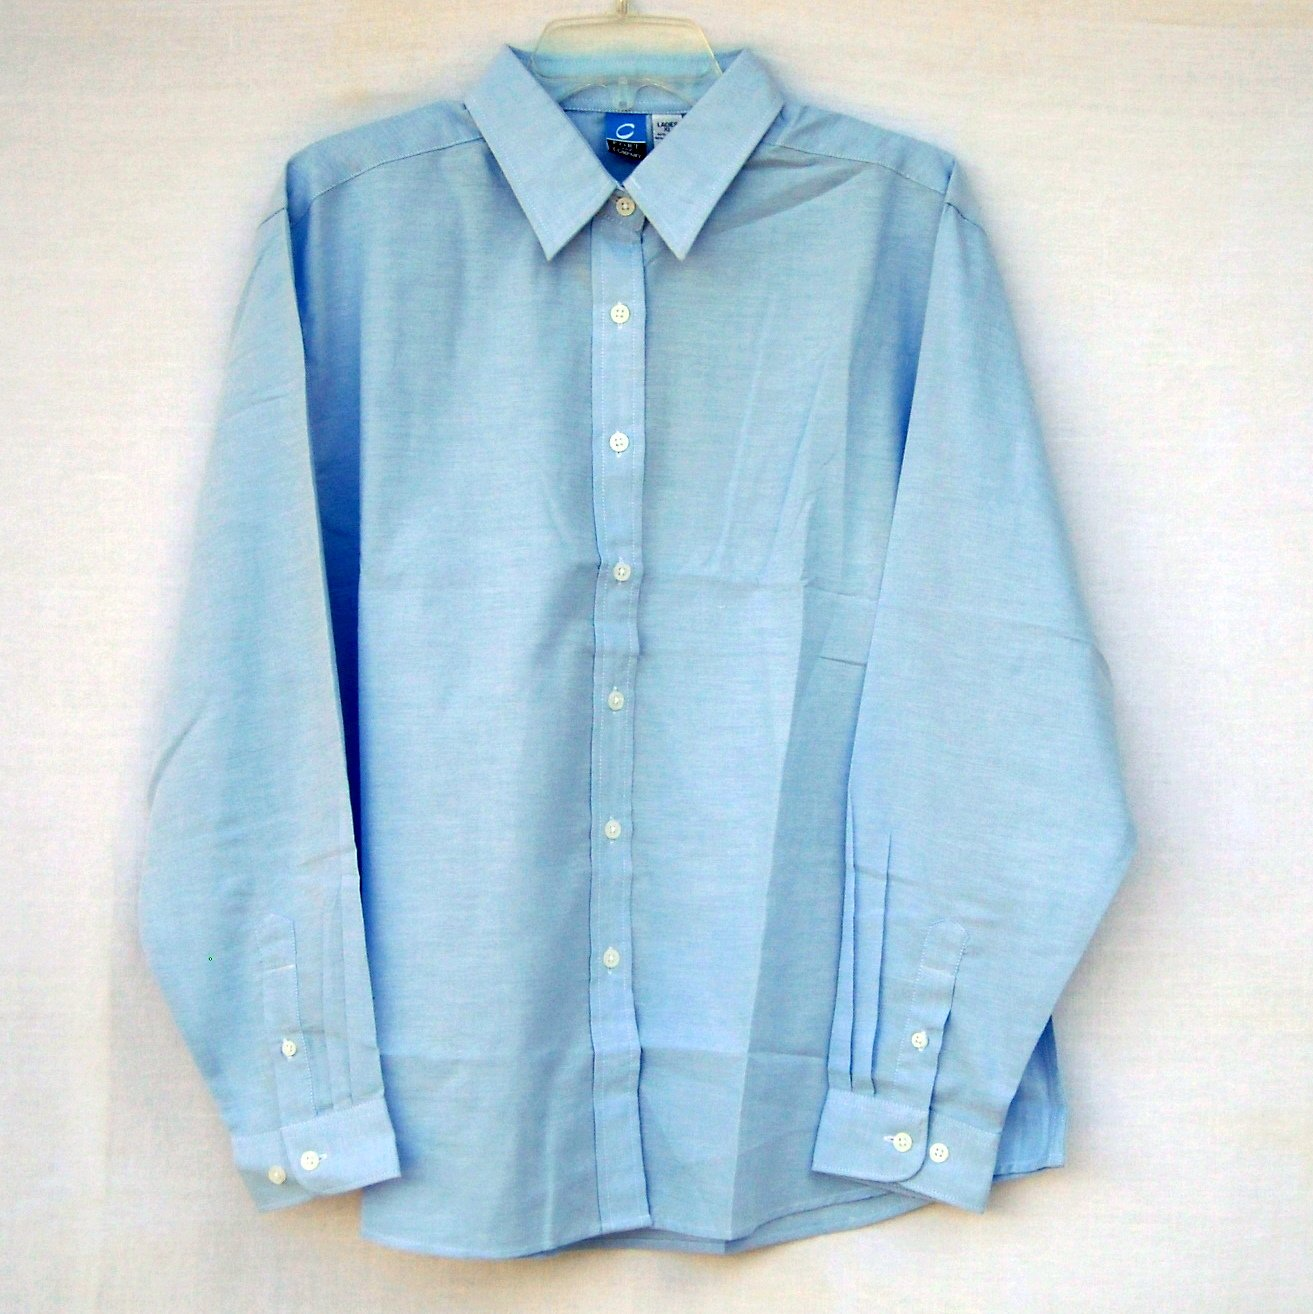 Misses Blue Denim Country Western Button Up Shirt Top Size XS